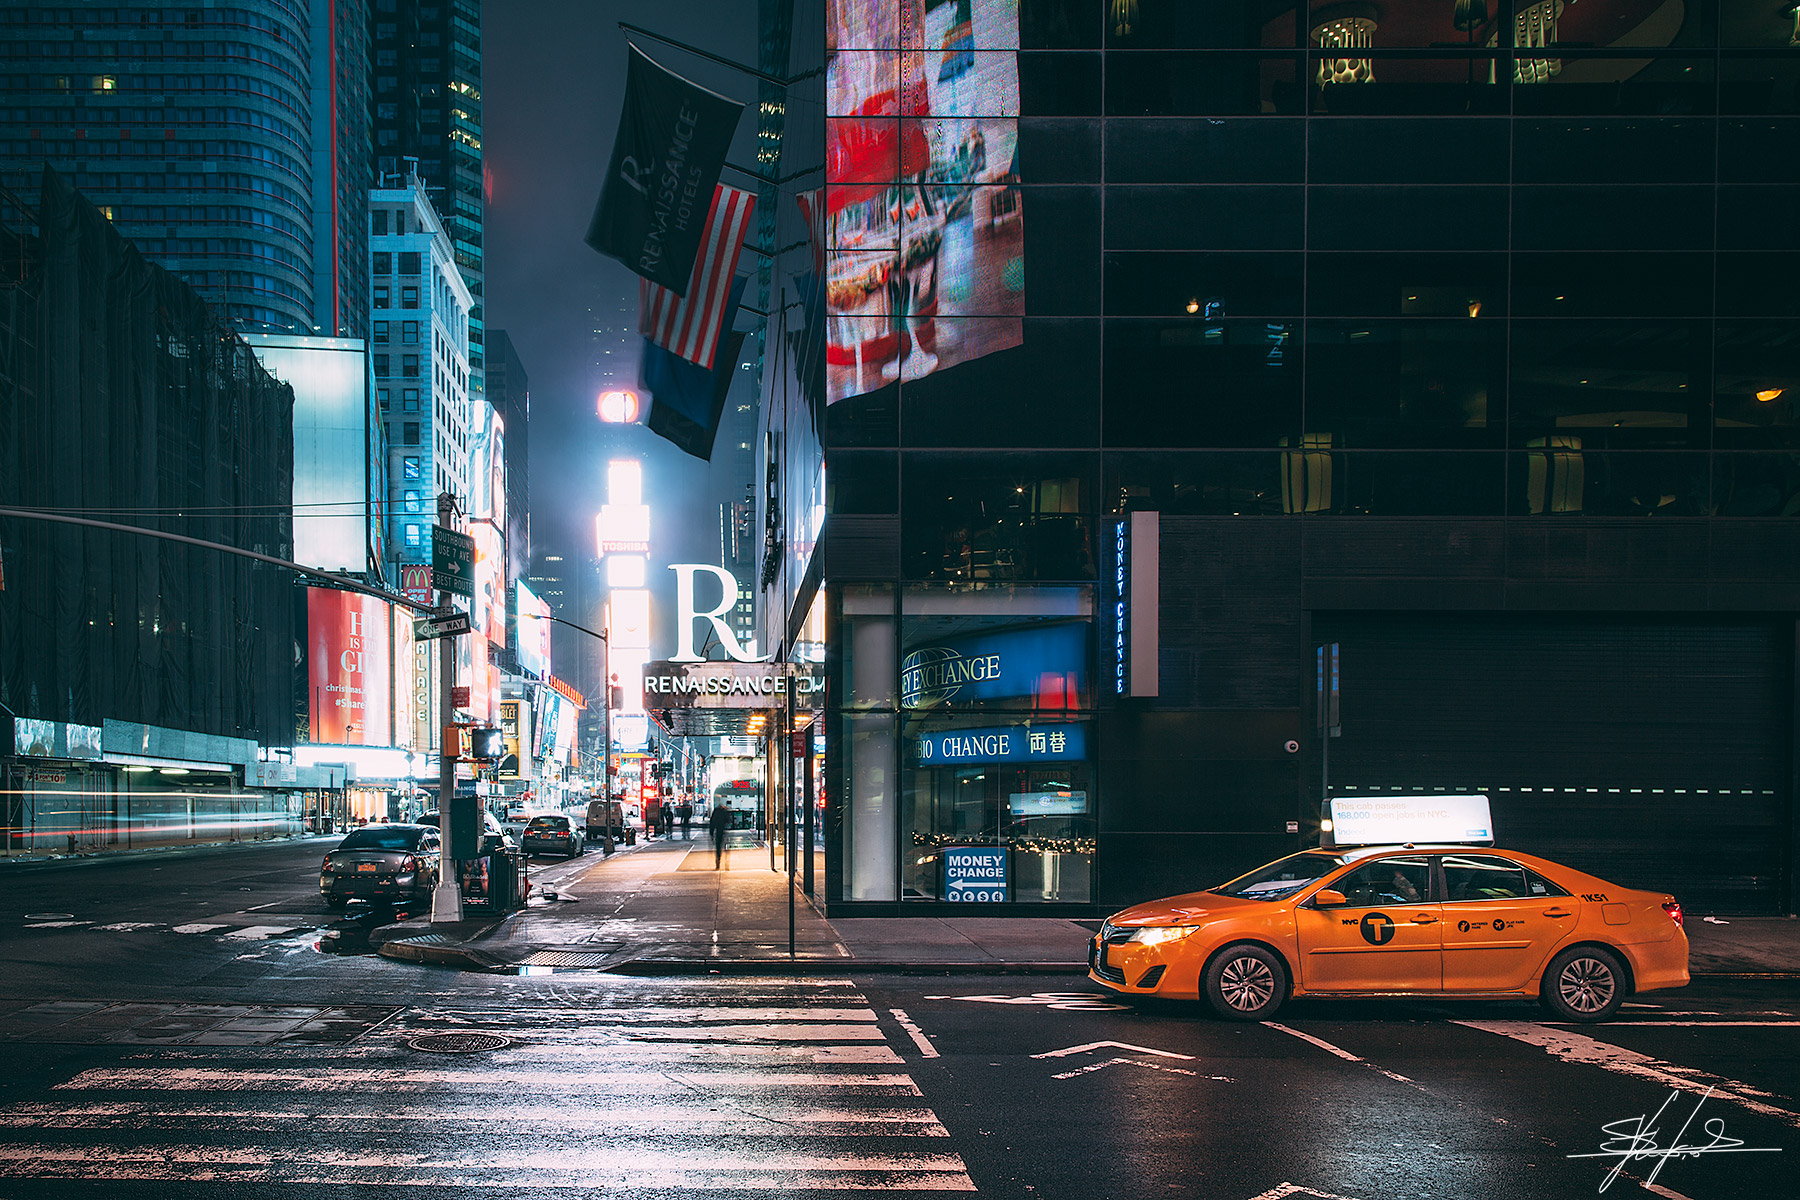 Times Square - 2am